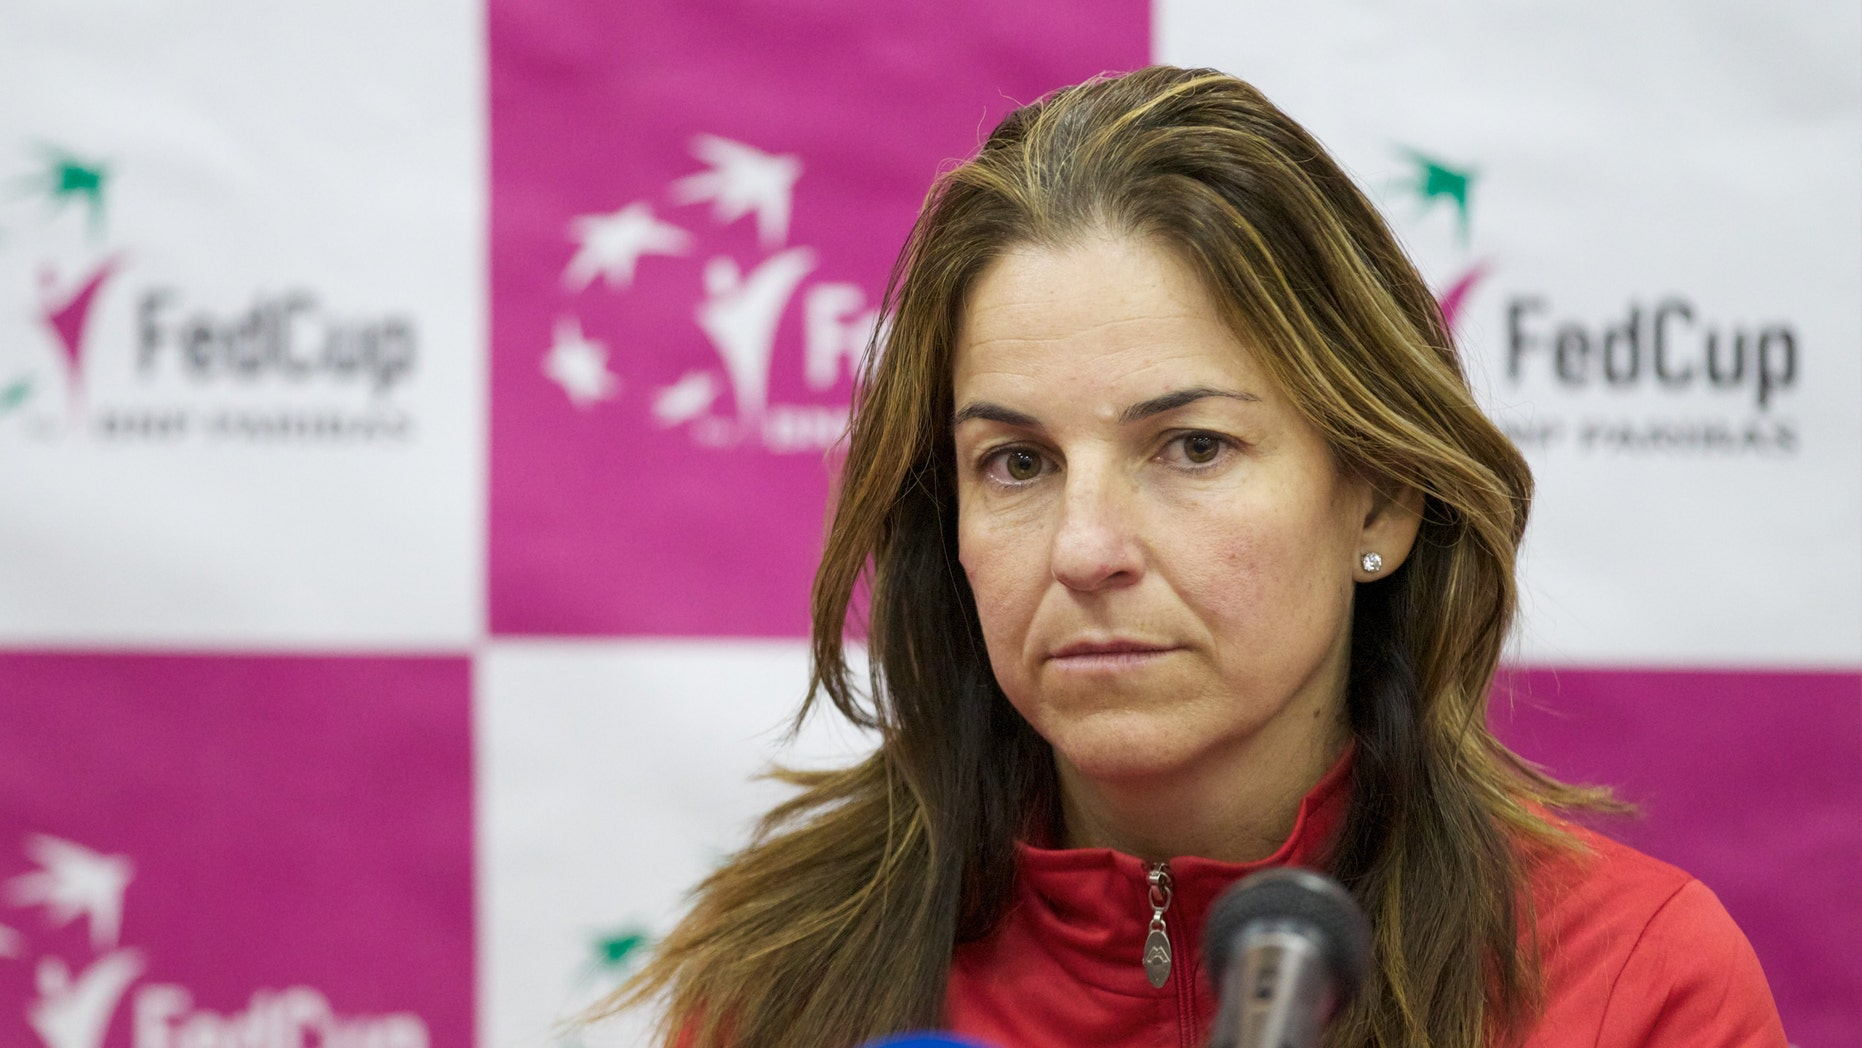 Spanish team captain Arantxa Sanchez Vicario listens to a question during the team's news conference in Moscow, Russia, Wednesday, Feb. 1, 2012.